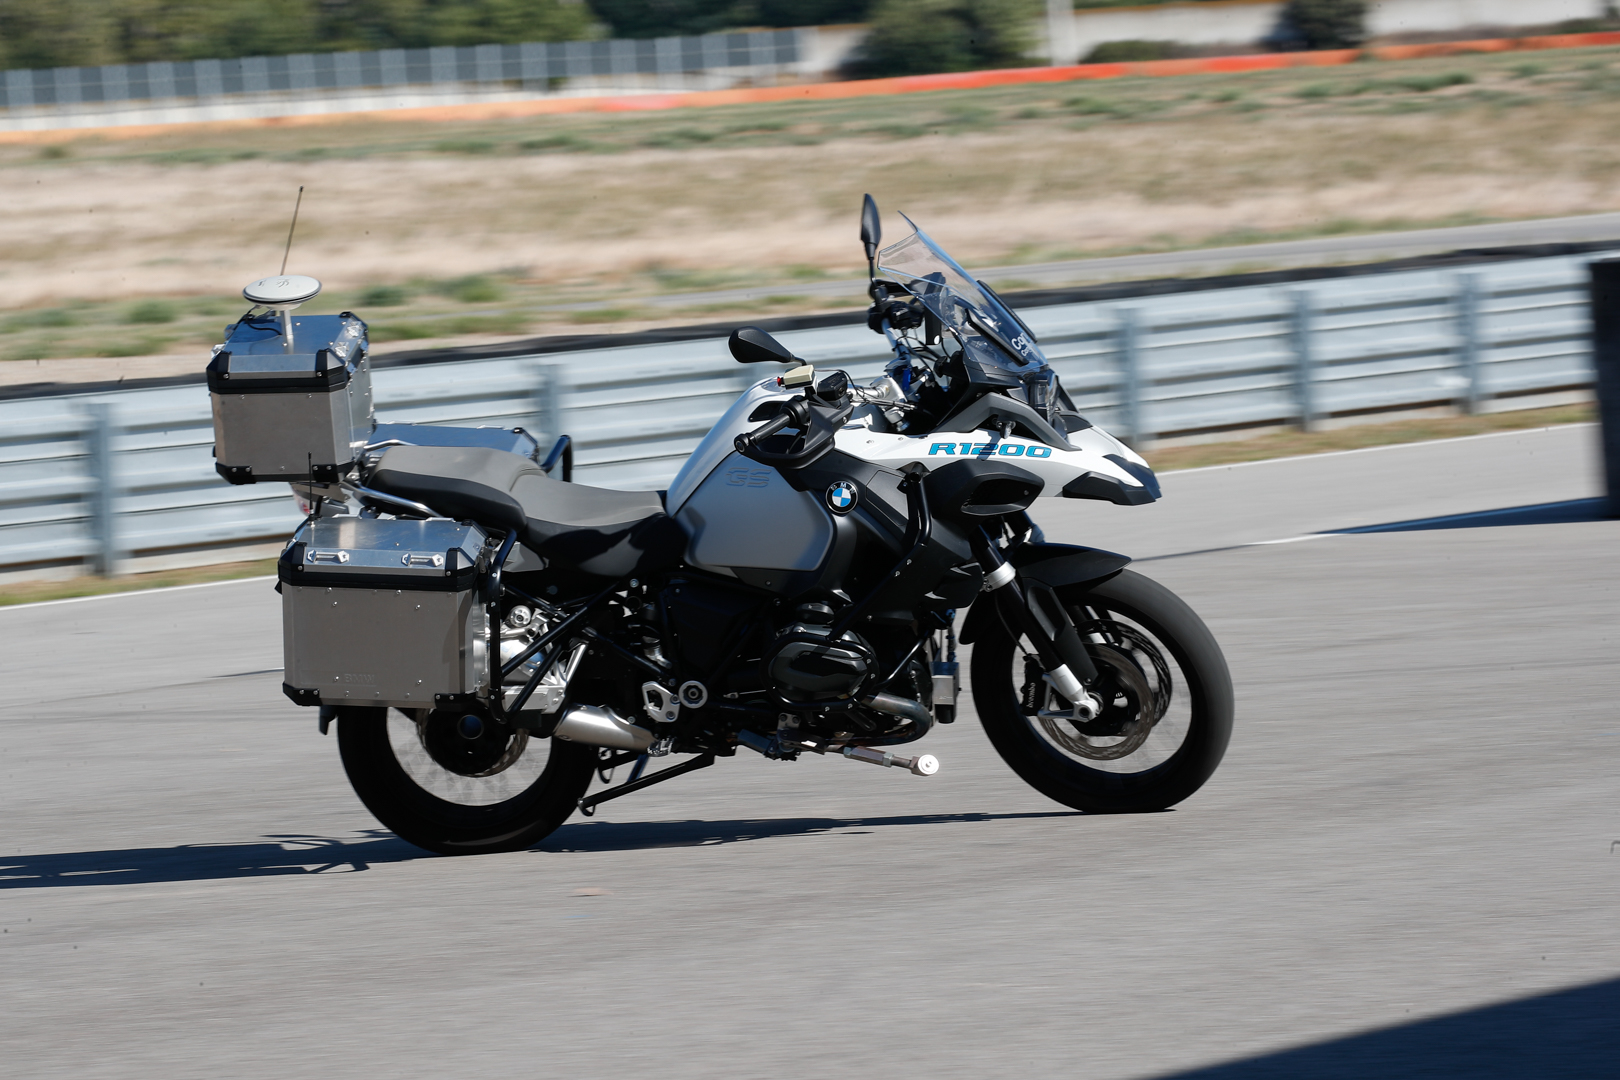 BMW has developed its own self-driving motorcycle